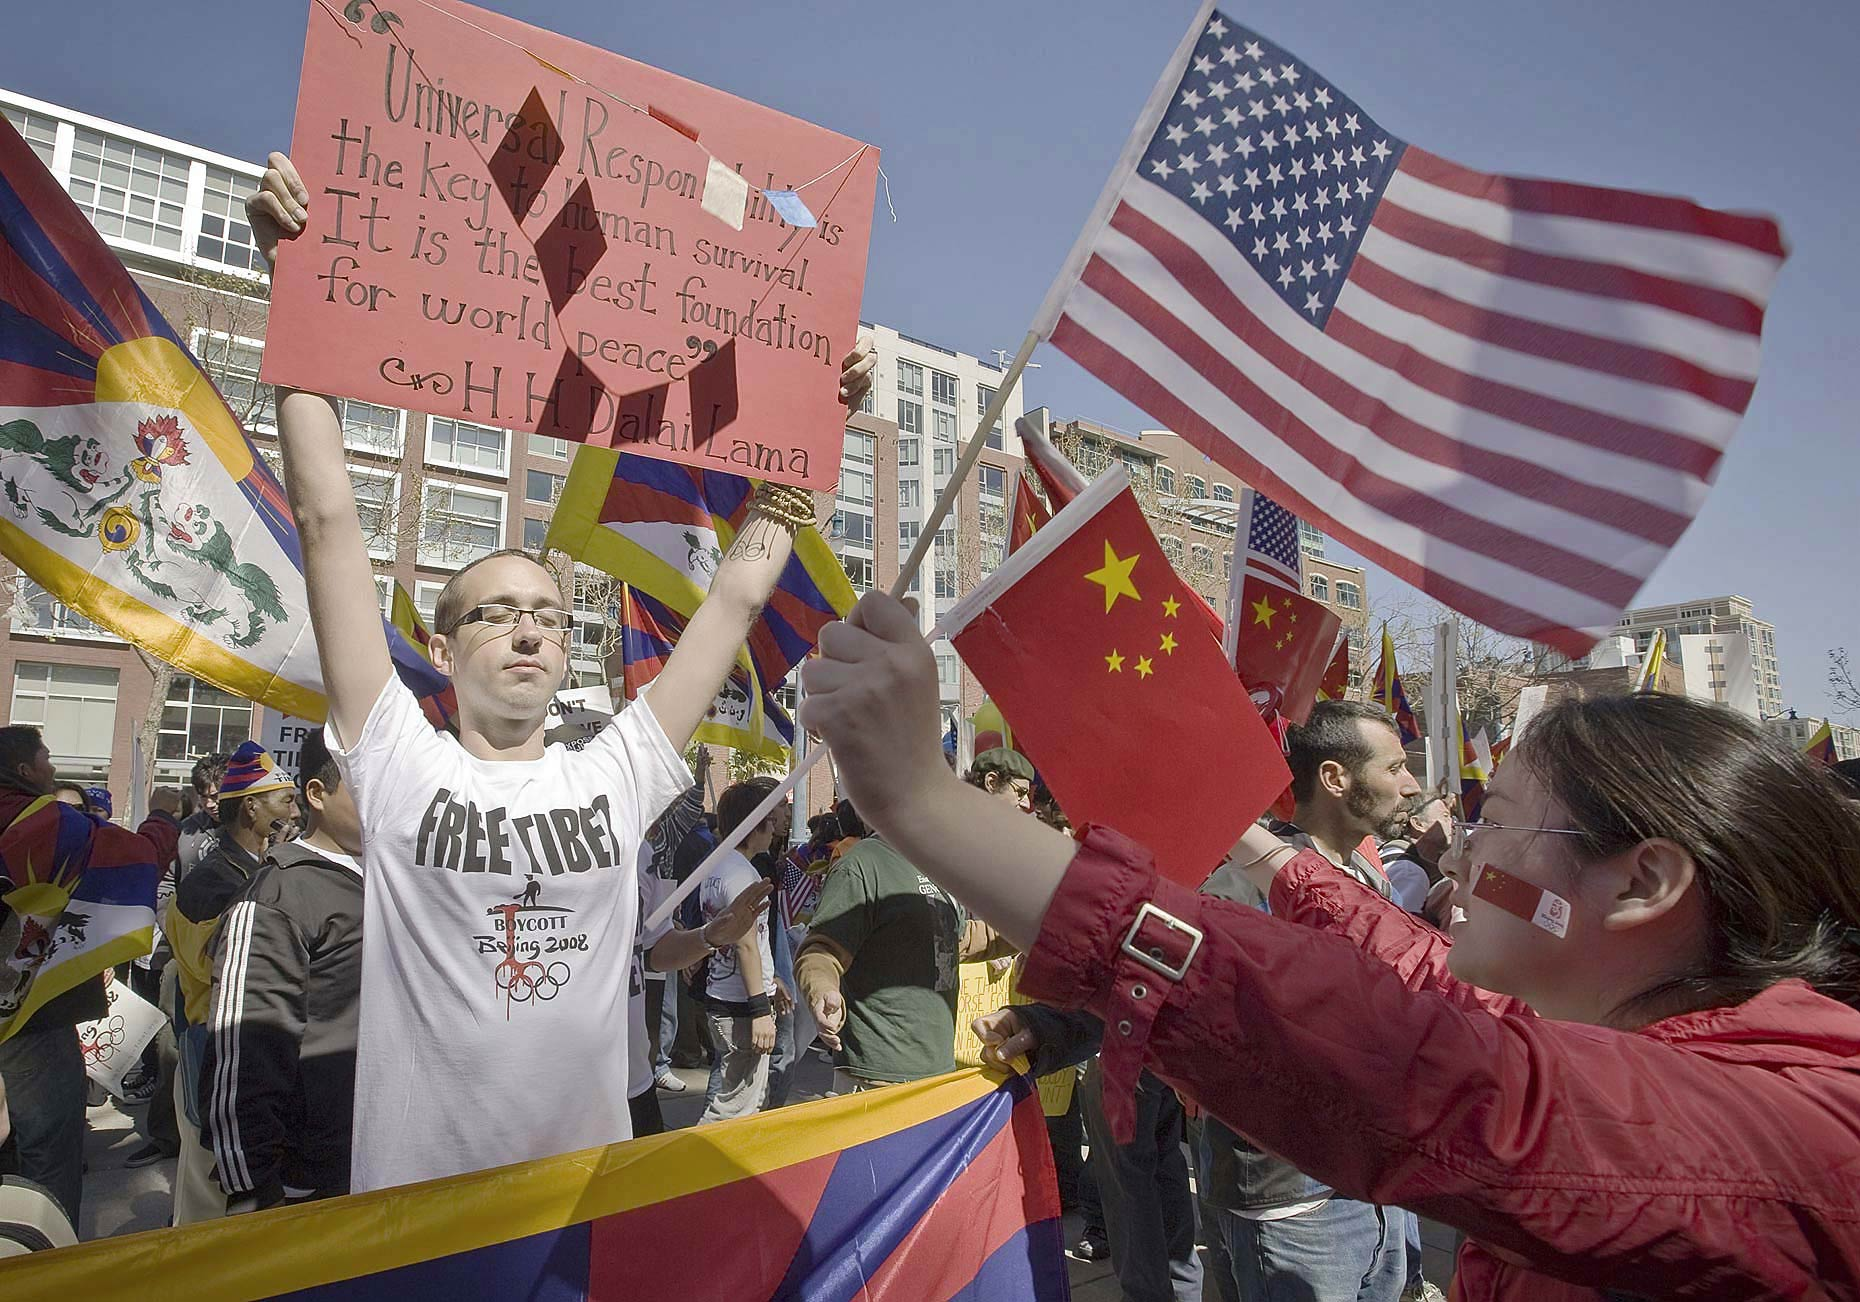 NEW_PhotoReporters_San-Francisco-Olympic-Torch-Protest-China-Tibet_002